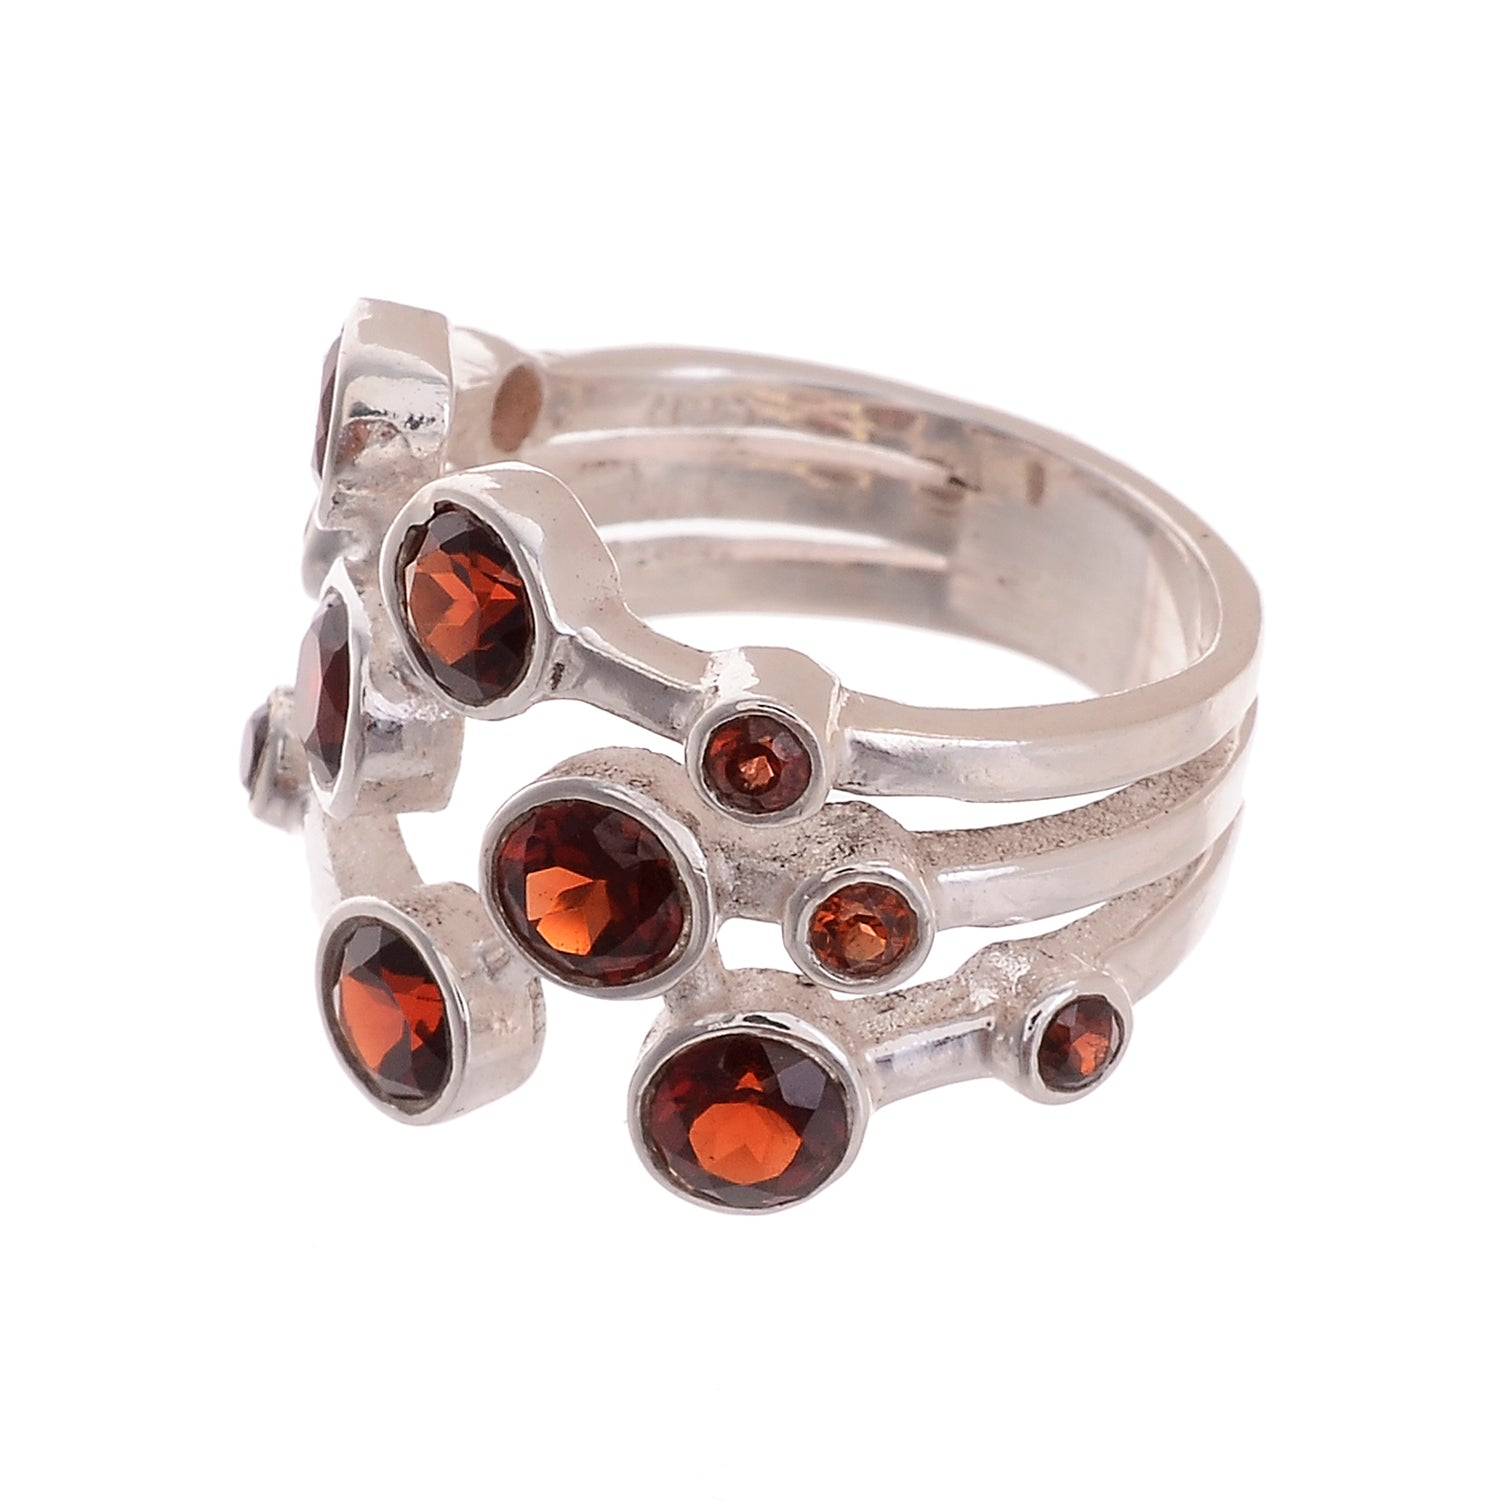 Sterling Silver 12 Stone Gemstone Ring - Available in 7 stones